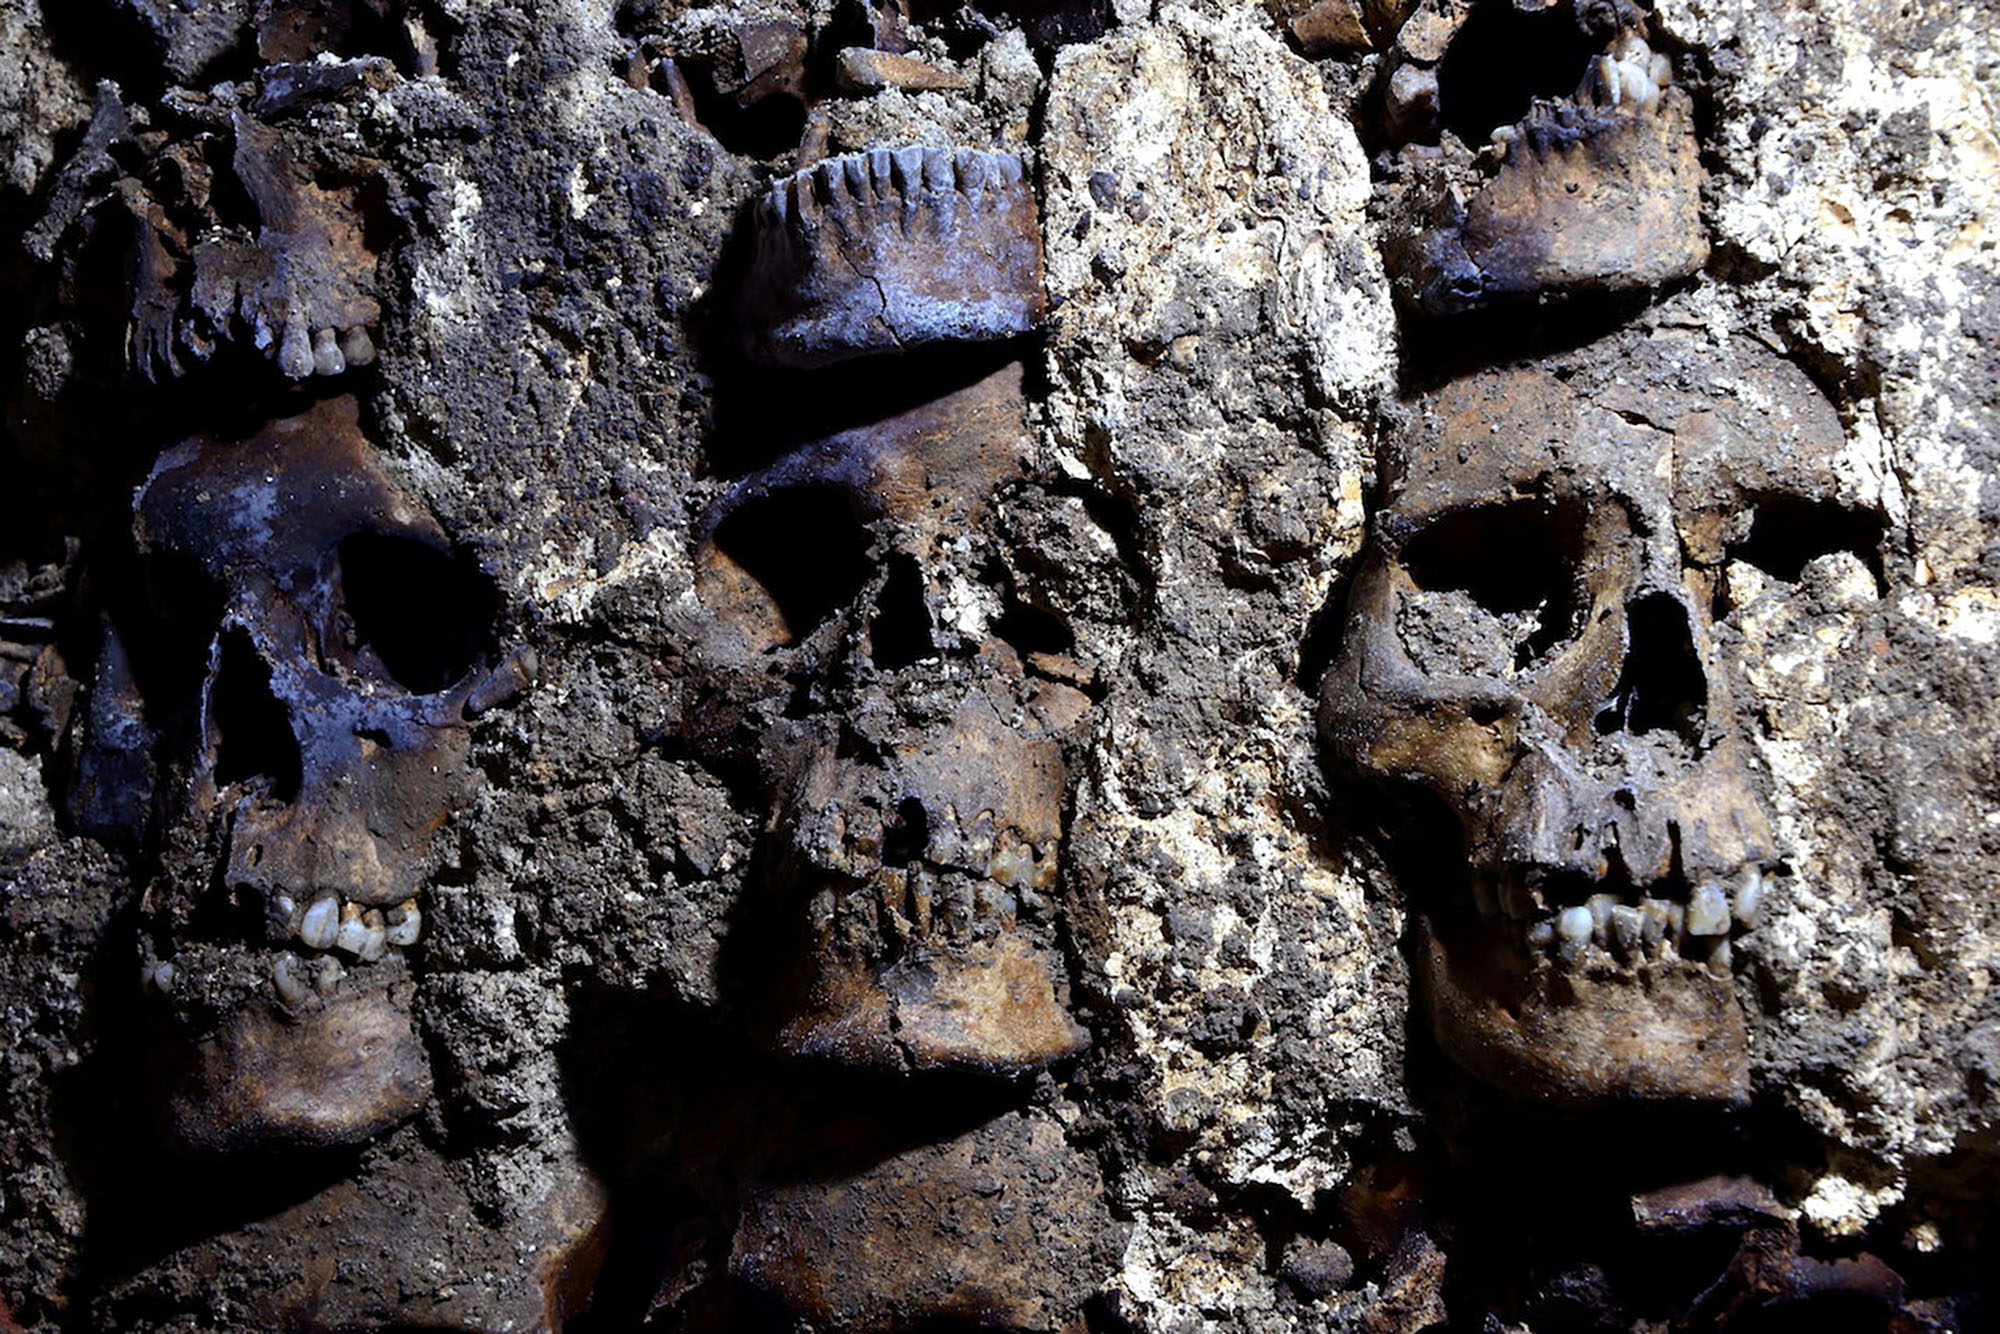 'Tower of human skulls' built by Aztecs found in Mexico City